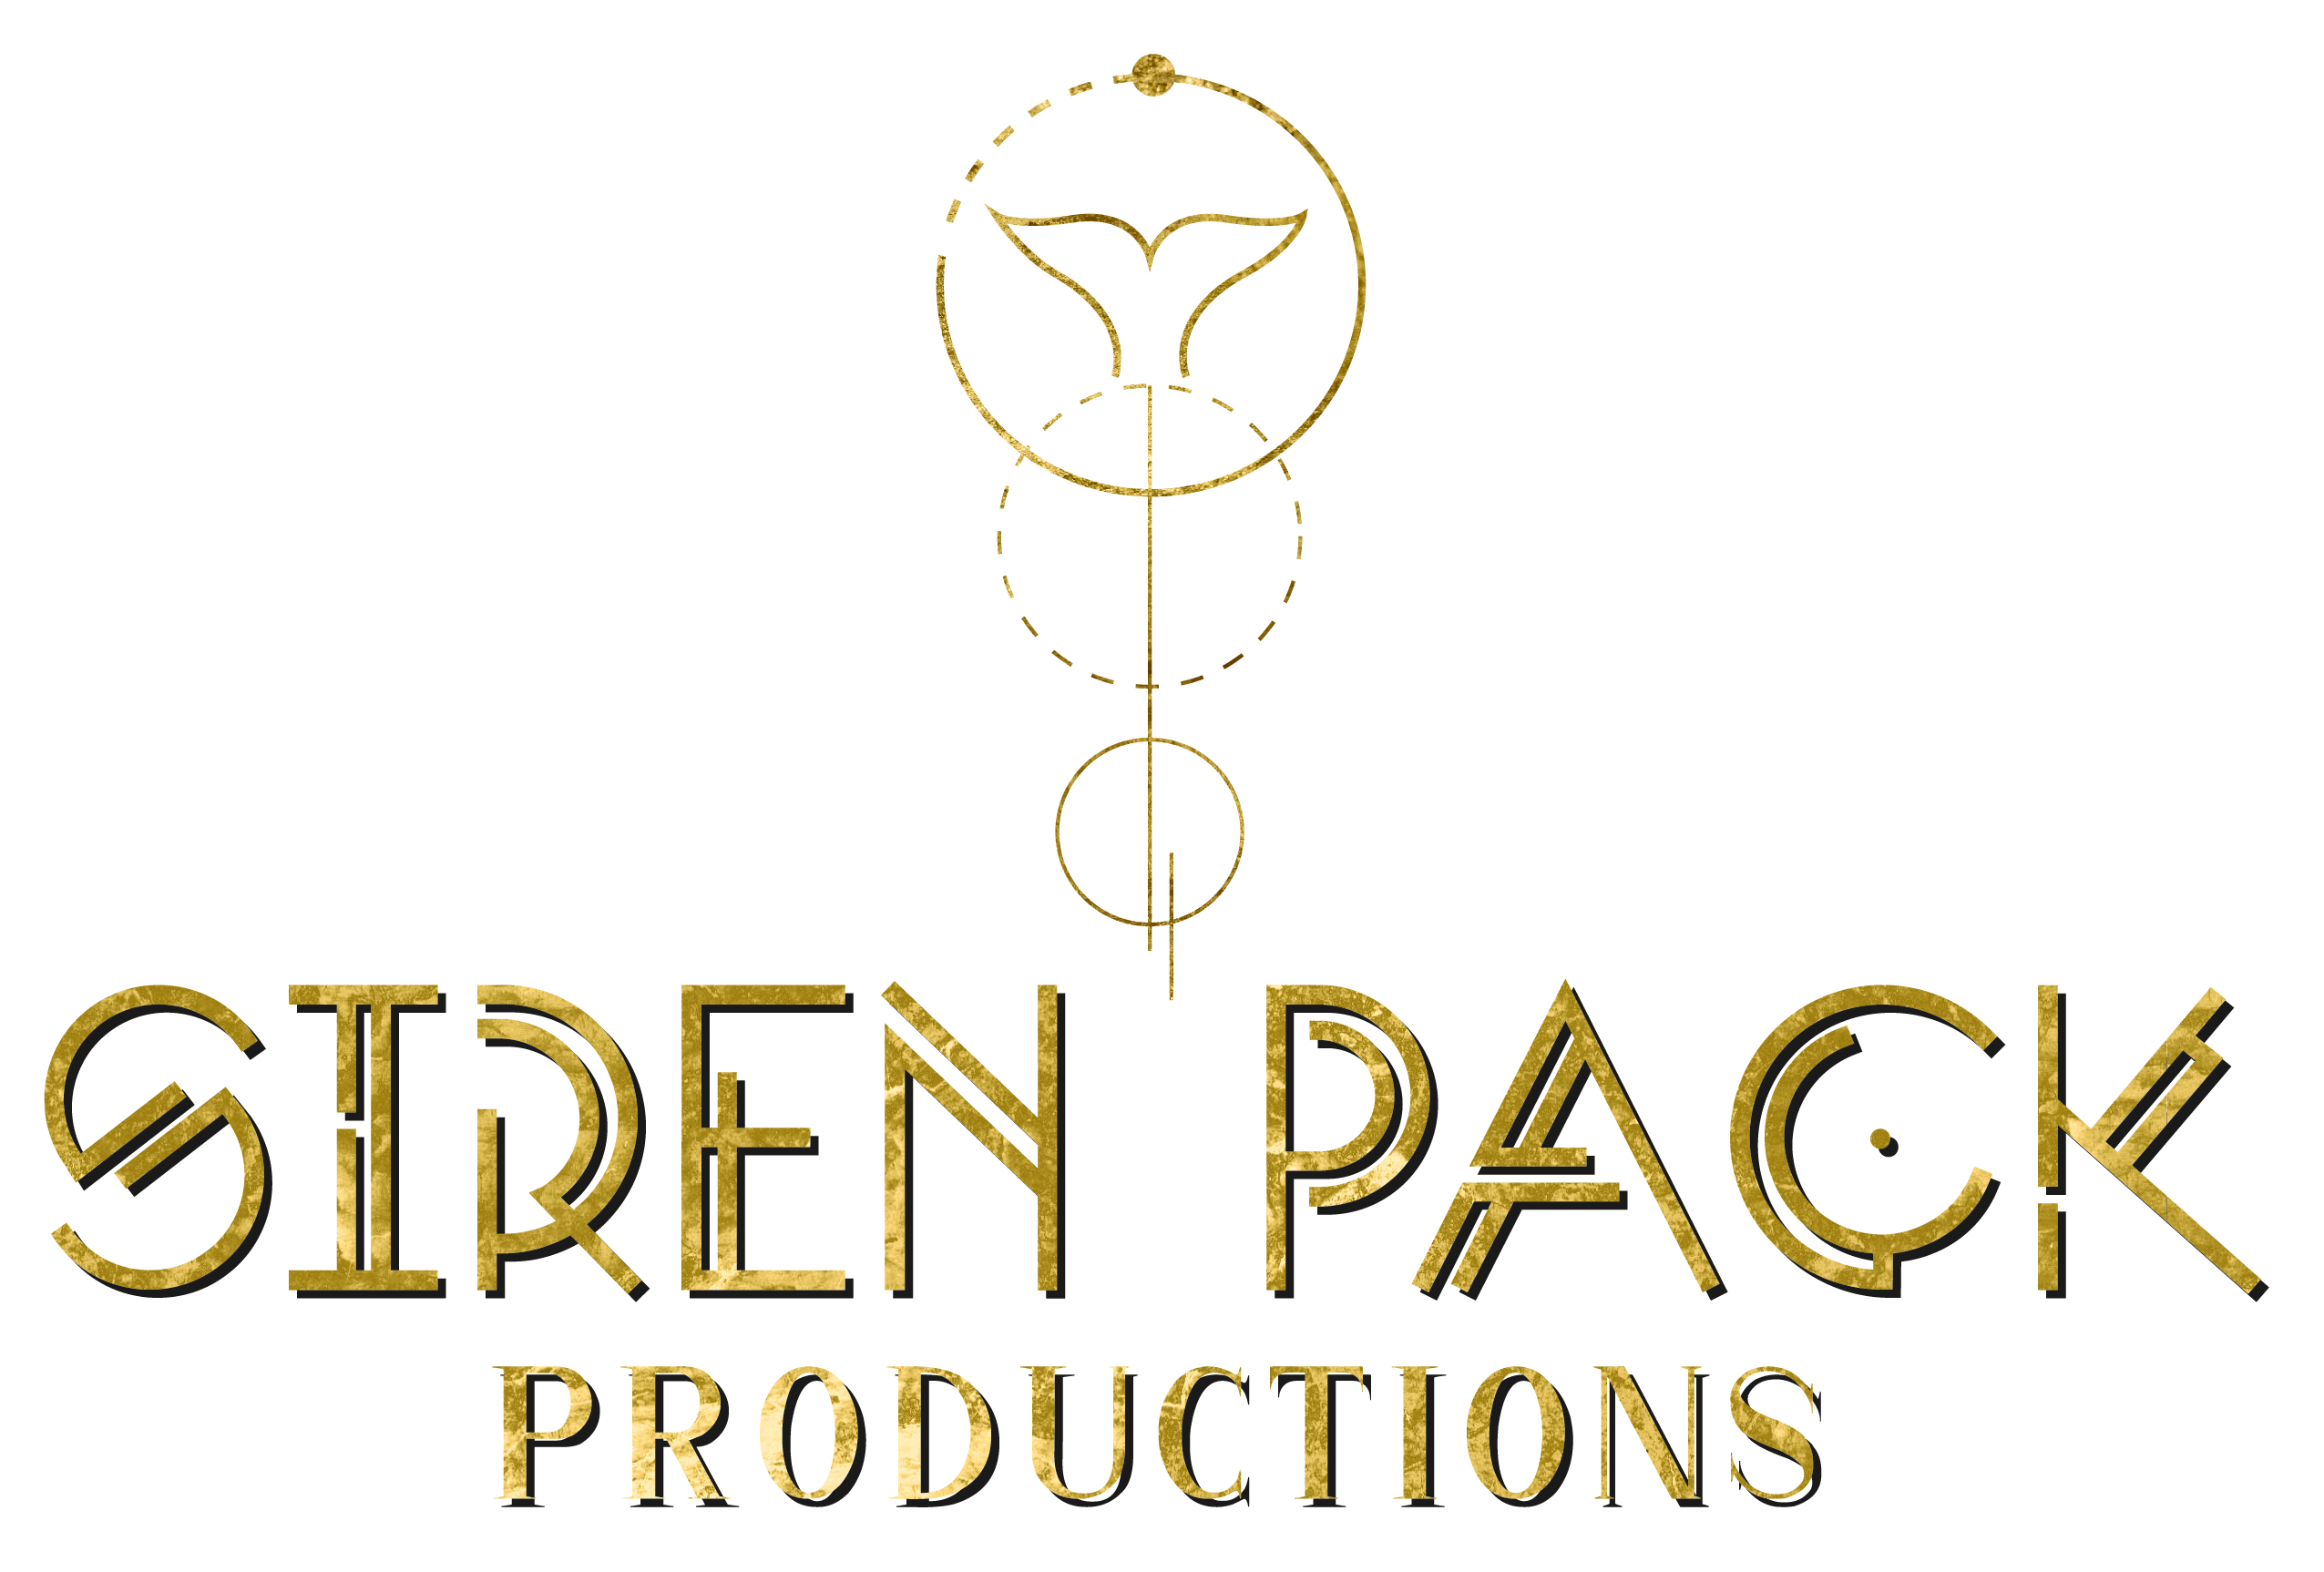 Siren Pack Productions logo - www.shayaulait.com